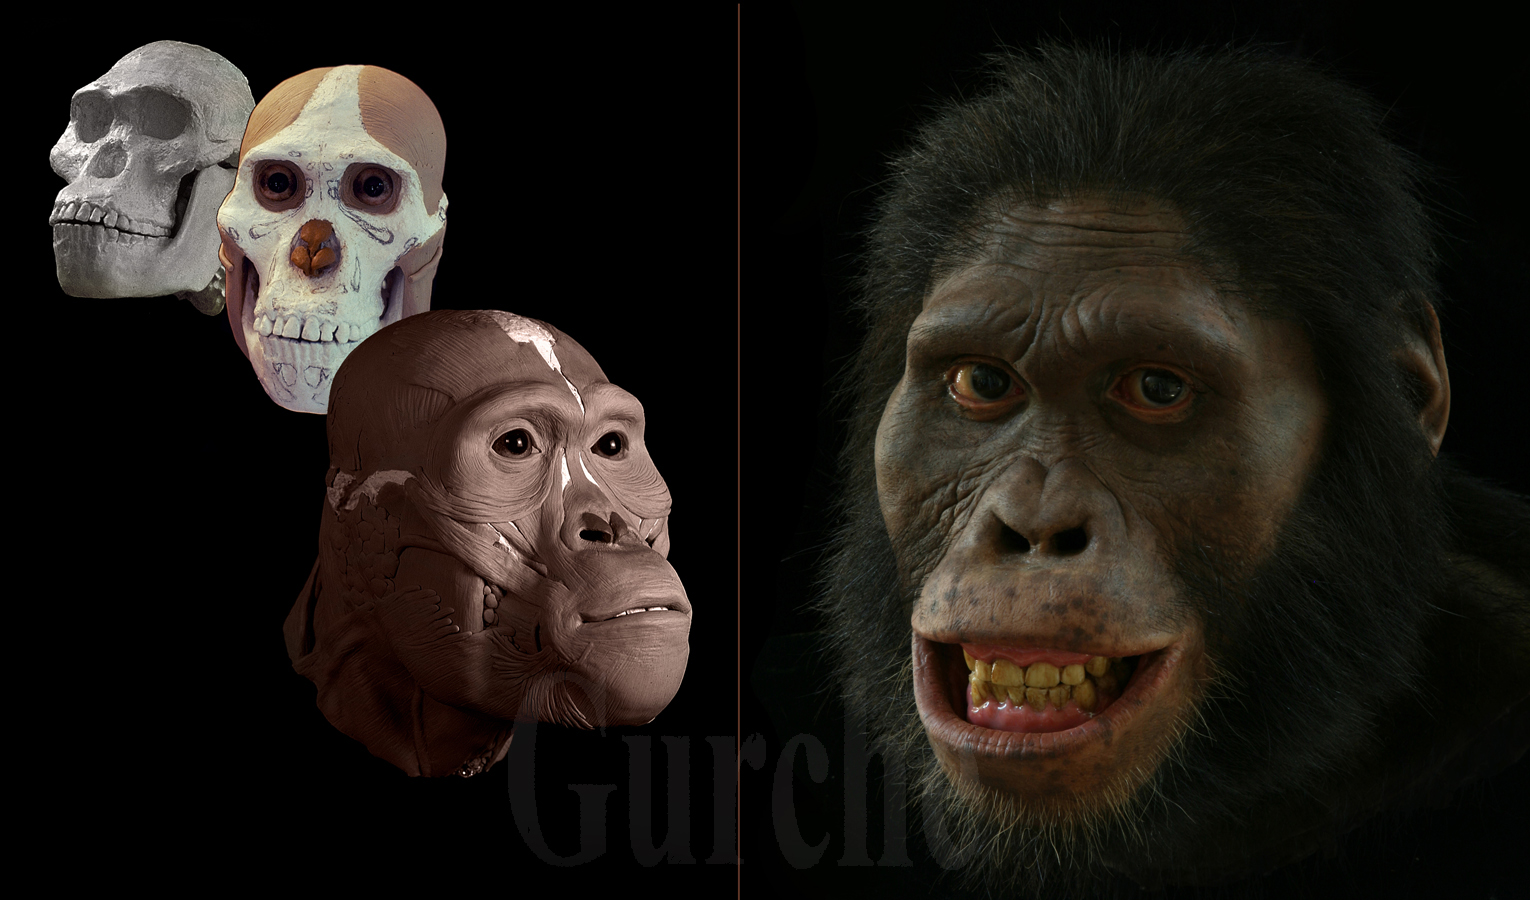 Image 793 A africanus phases of reconstruction based on Sts 5.jpg